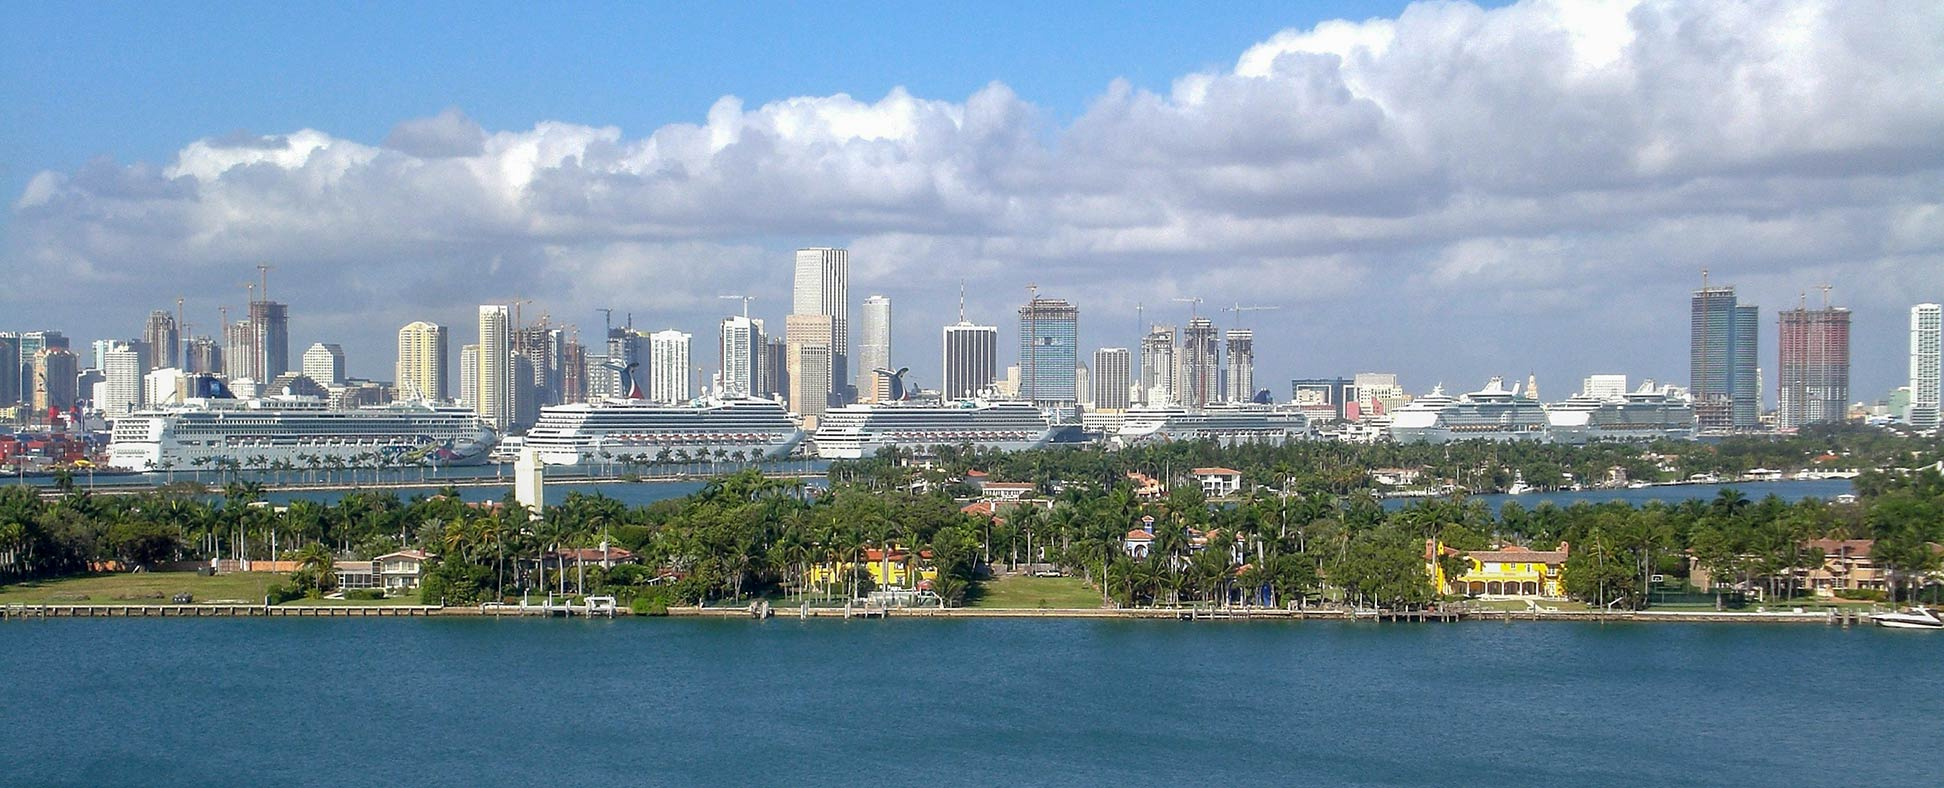 Google Map Of Miami, Florida, Usa - Nations Online Project - Google Map Miami Florida